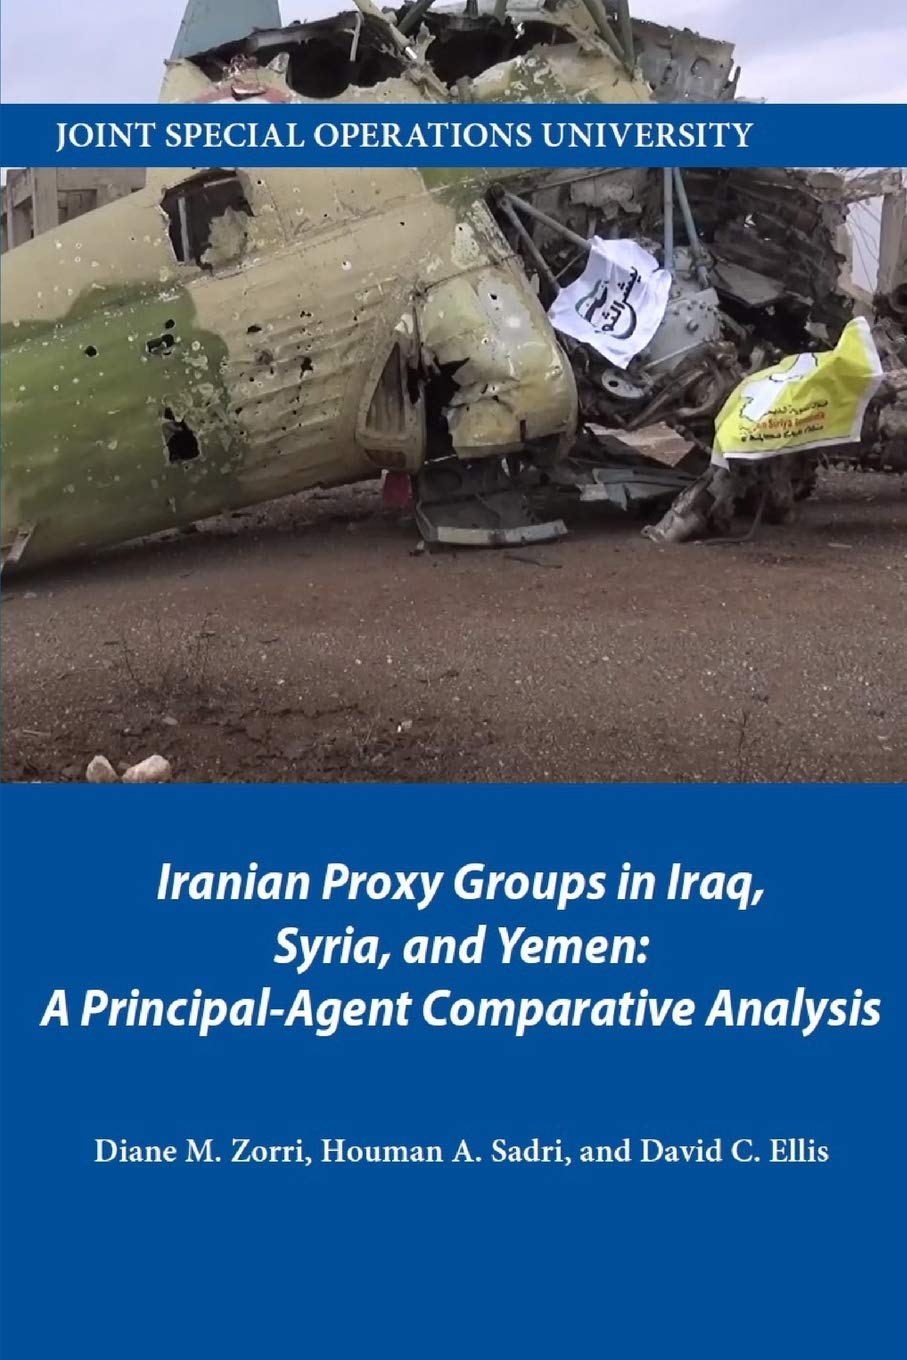 Iranian Proxy Groups in Iraq, Syria, and Yemen: A Principal-Agent Comparative Analysis